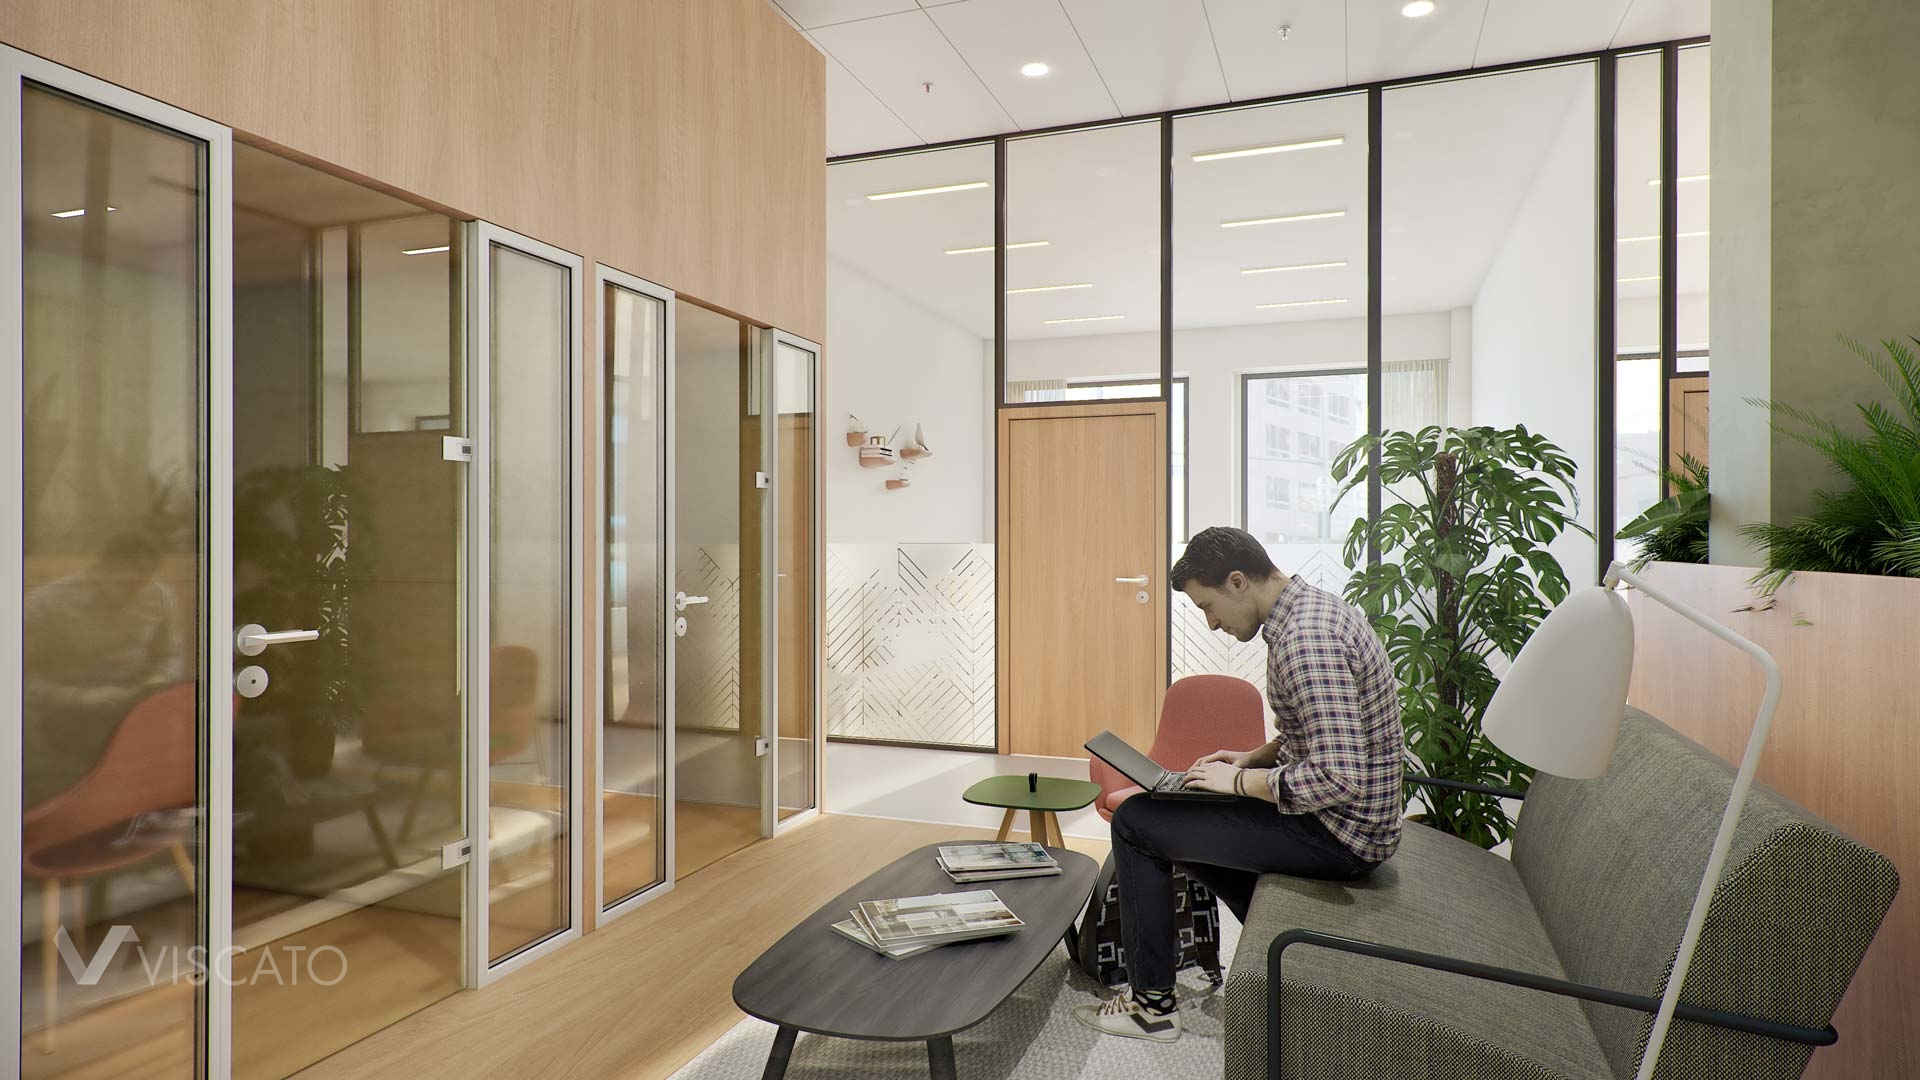 Office interiors in Antwerp, 3d visualization